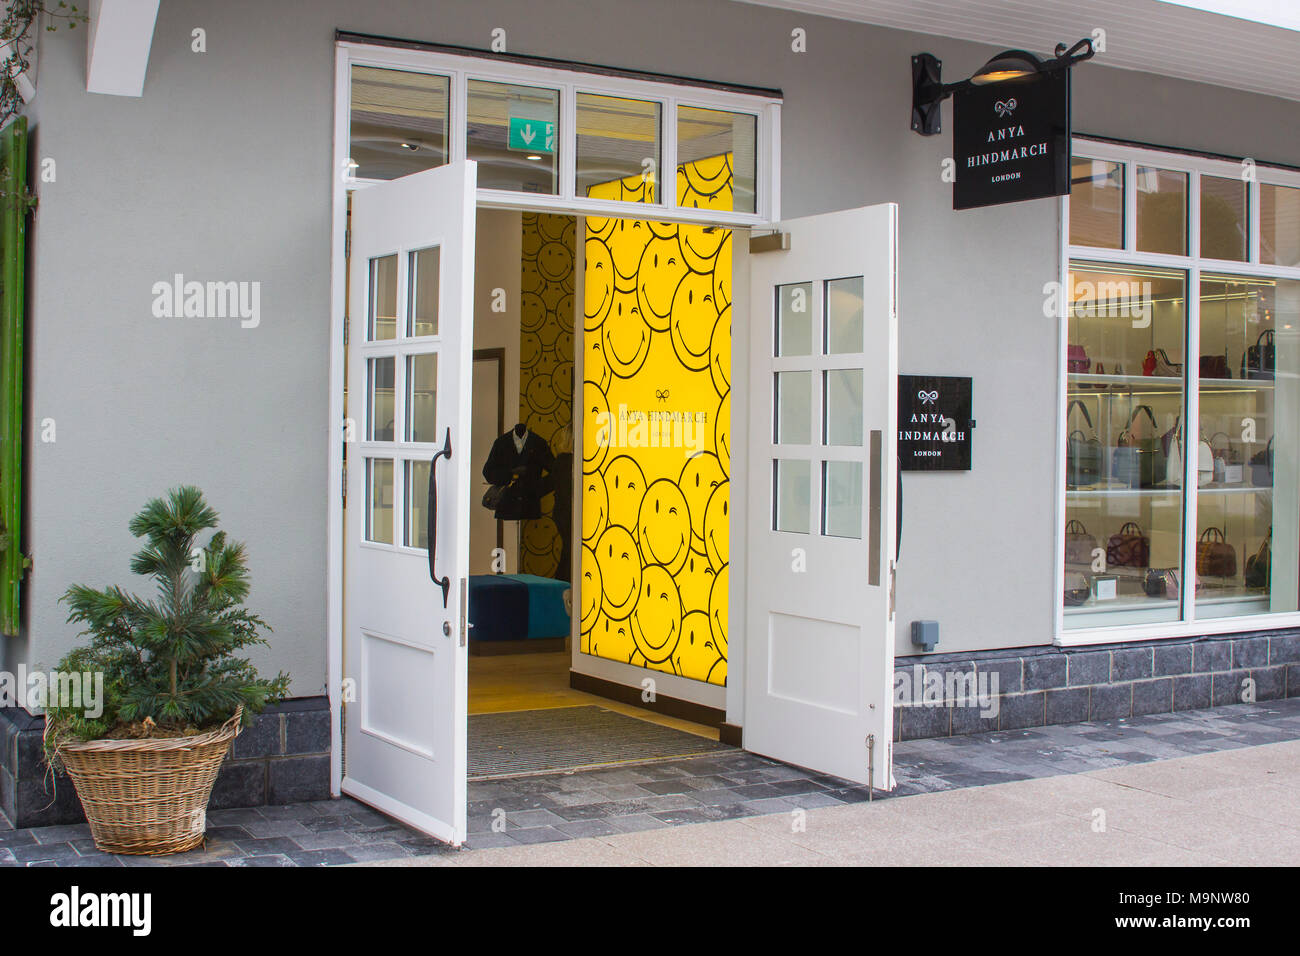 16 March 2018 The open doors of the Anya Hindmarch retail store at the up market Kildare Village shopping outlet  in County Kildare Ireland - Stock Image